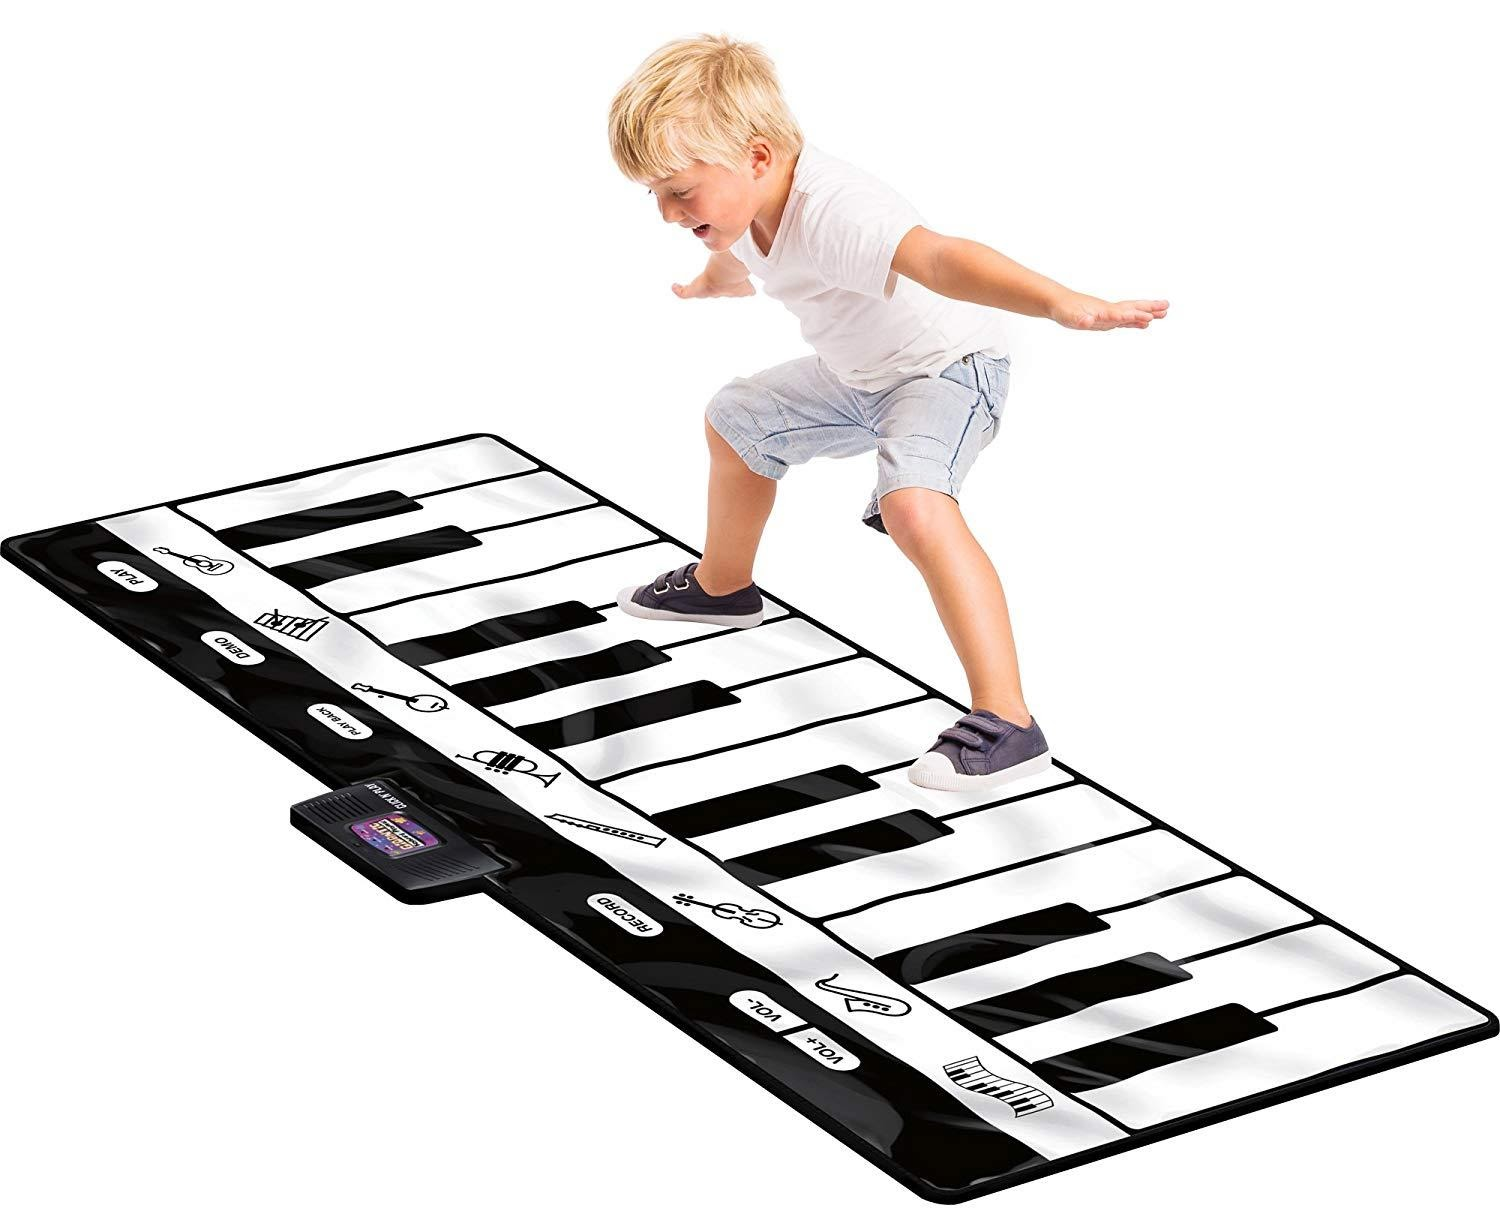 blod boy standing playing on keyboard play mat on white background